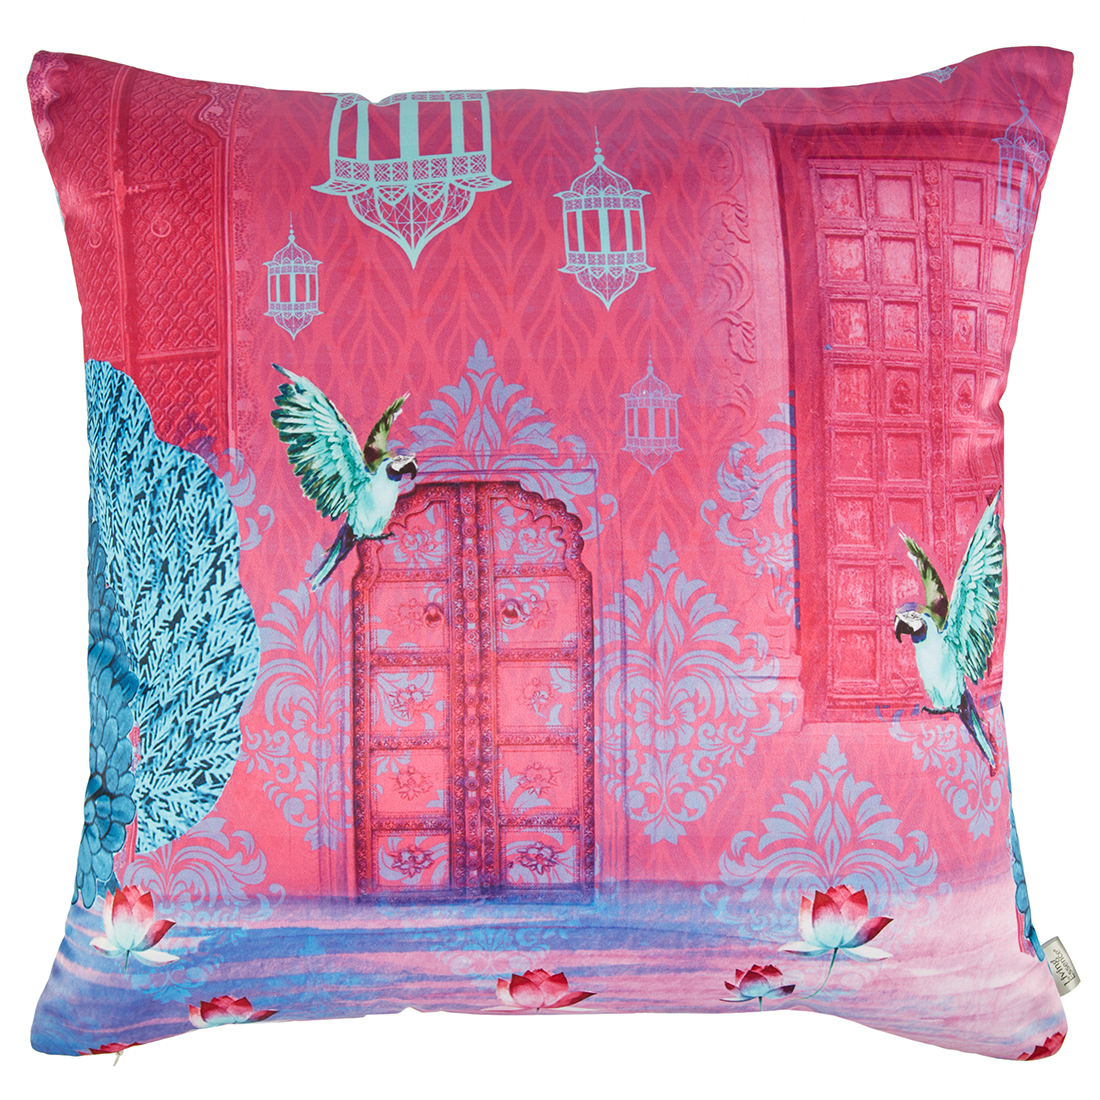 Digital Cushion Cover Bagh Cushion Covers in Poly Satin Colour by Living Essence